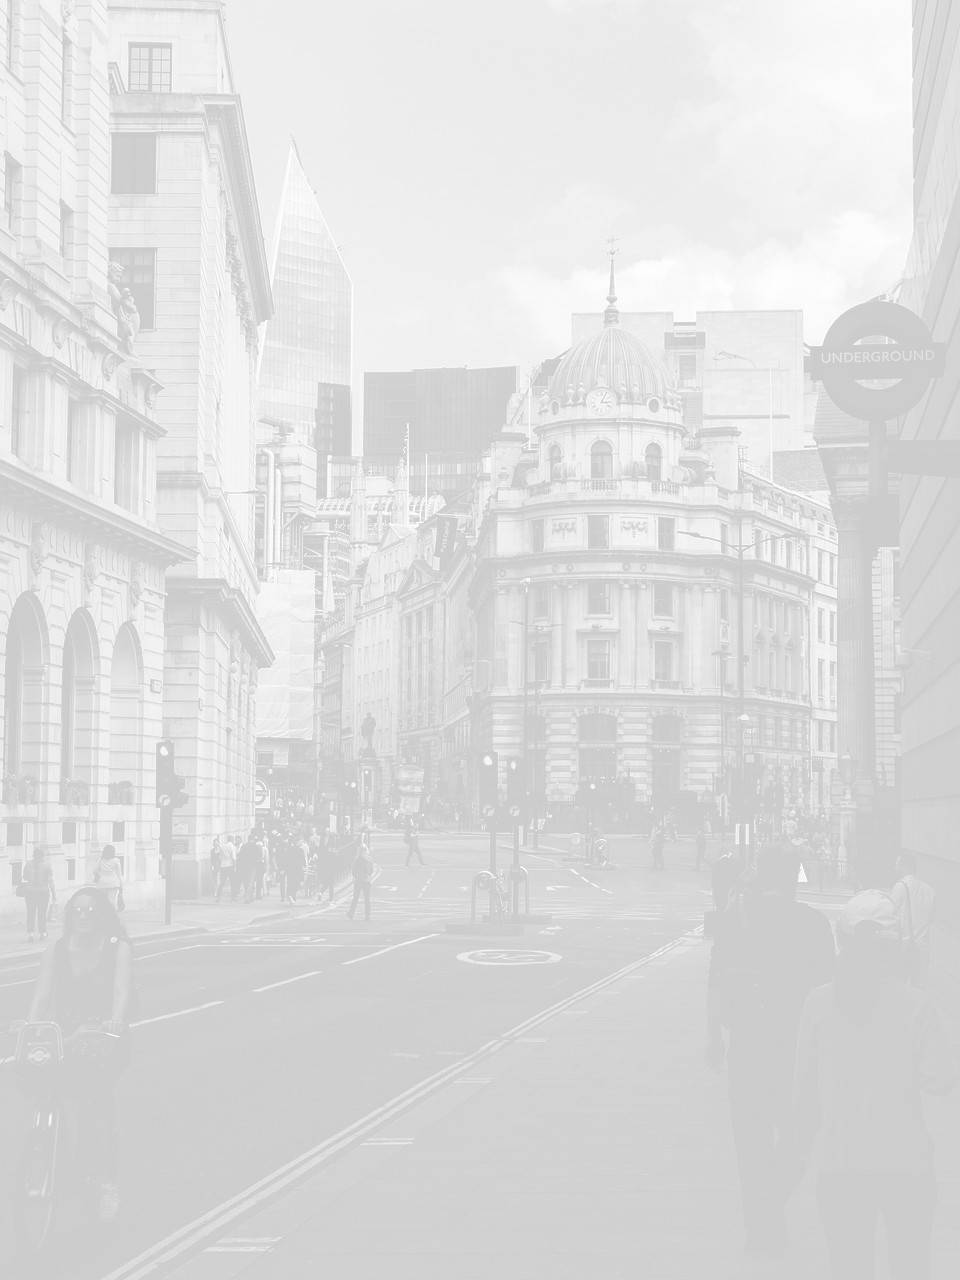 seo agency in london image of the city of london